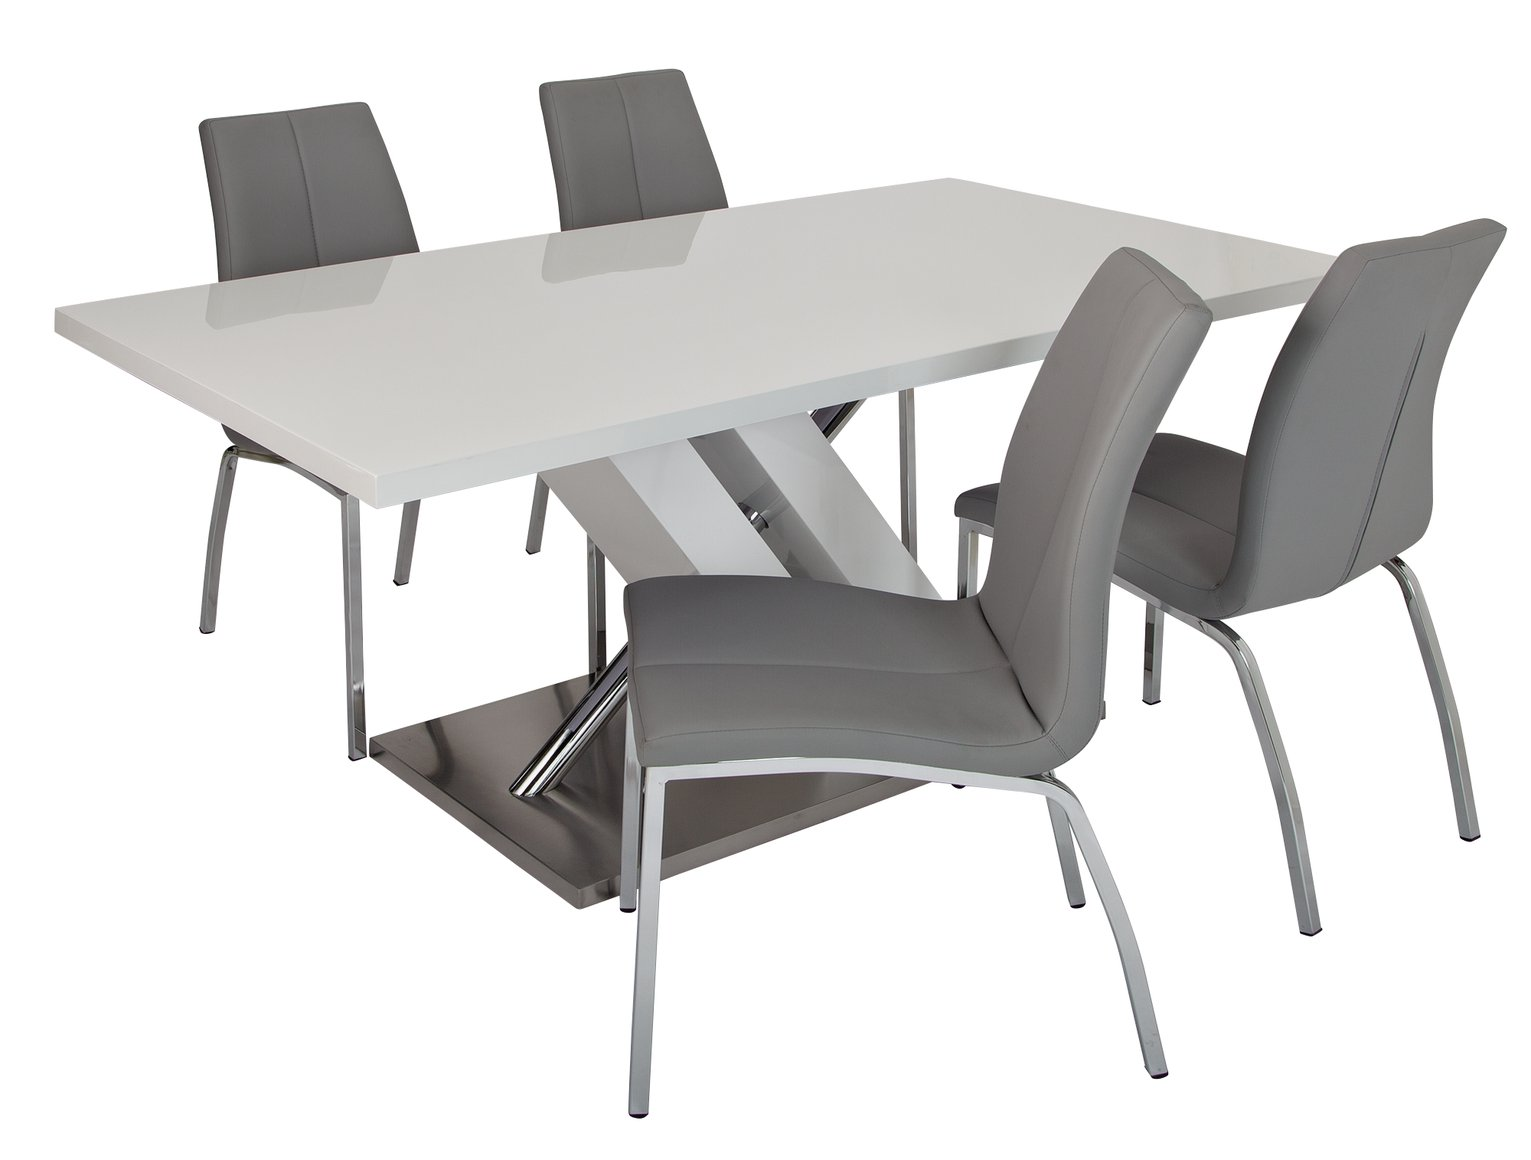 Argos Home Belvoir Pedestal Table and 4 Chairs - Grey  sc 1 st  Argos & Buy Argos Home Belvoir Pedestal Table and 4 Chairs - Grey | Dining ...